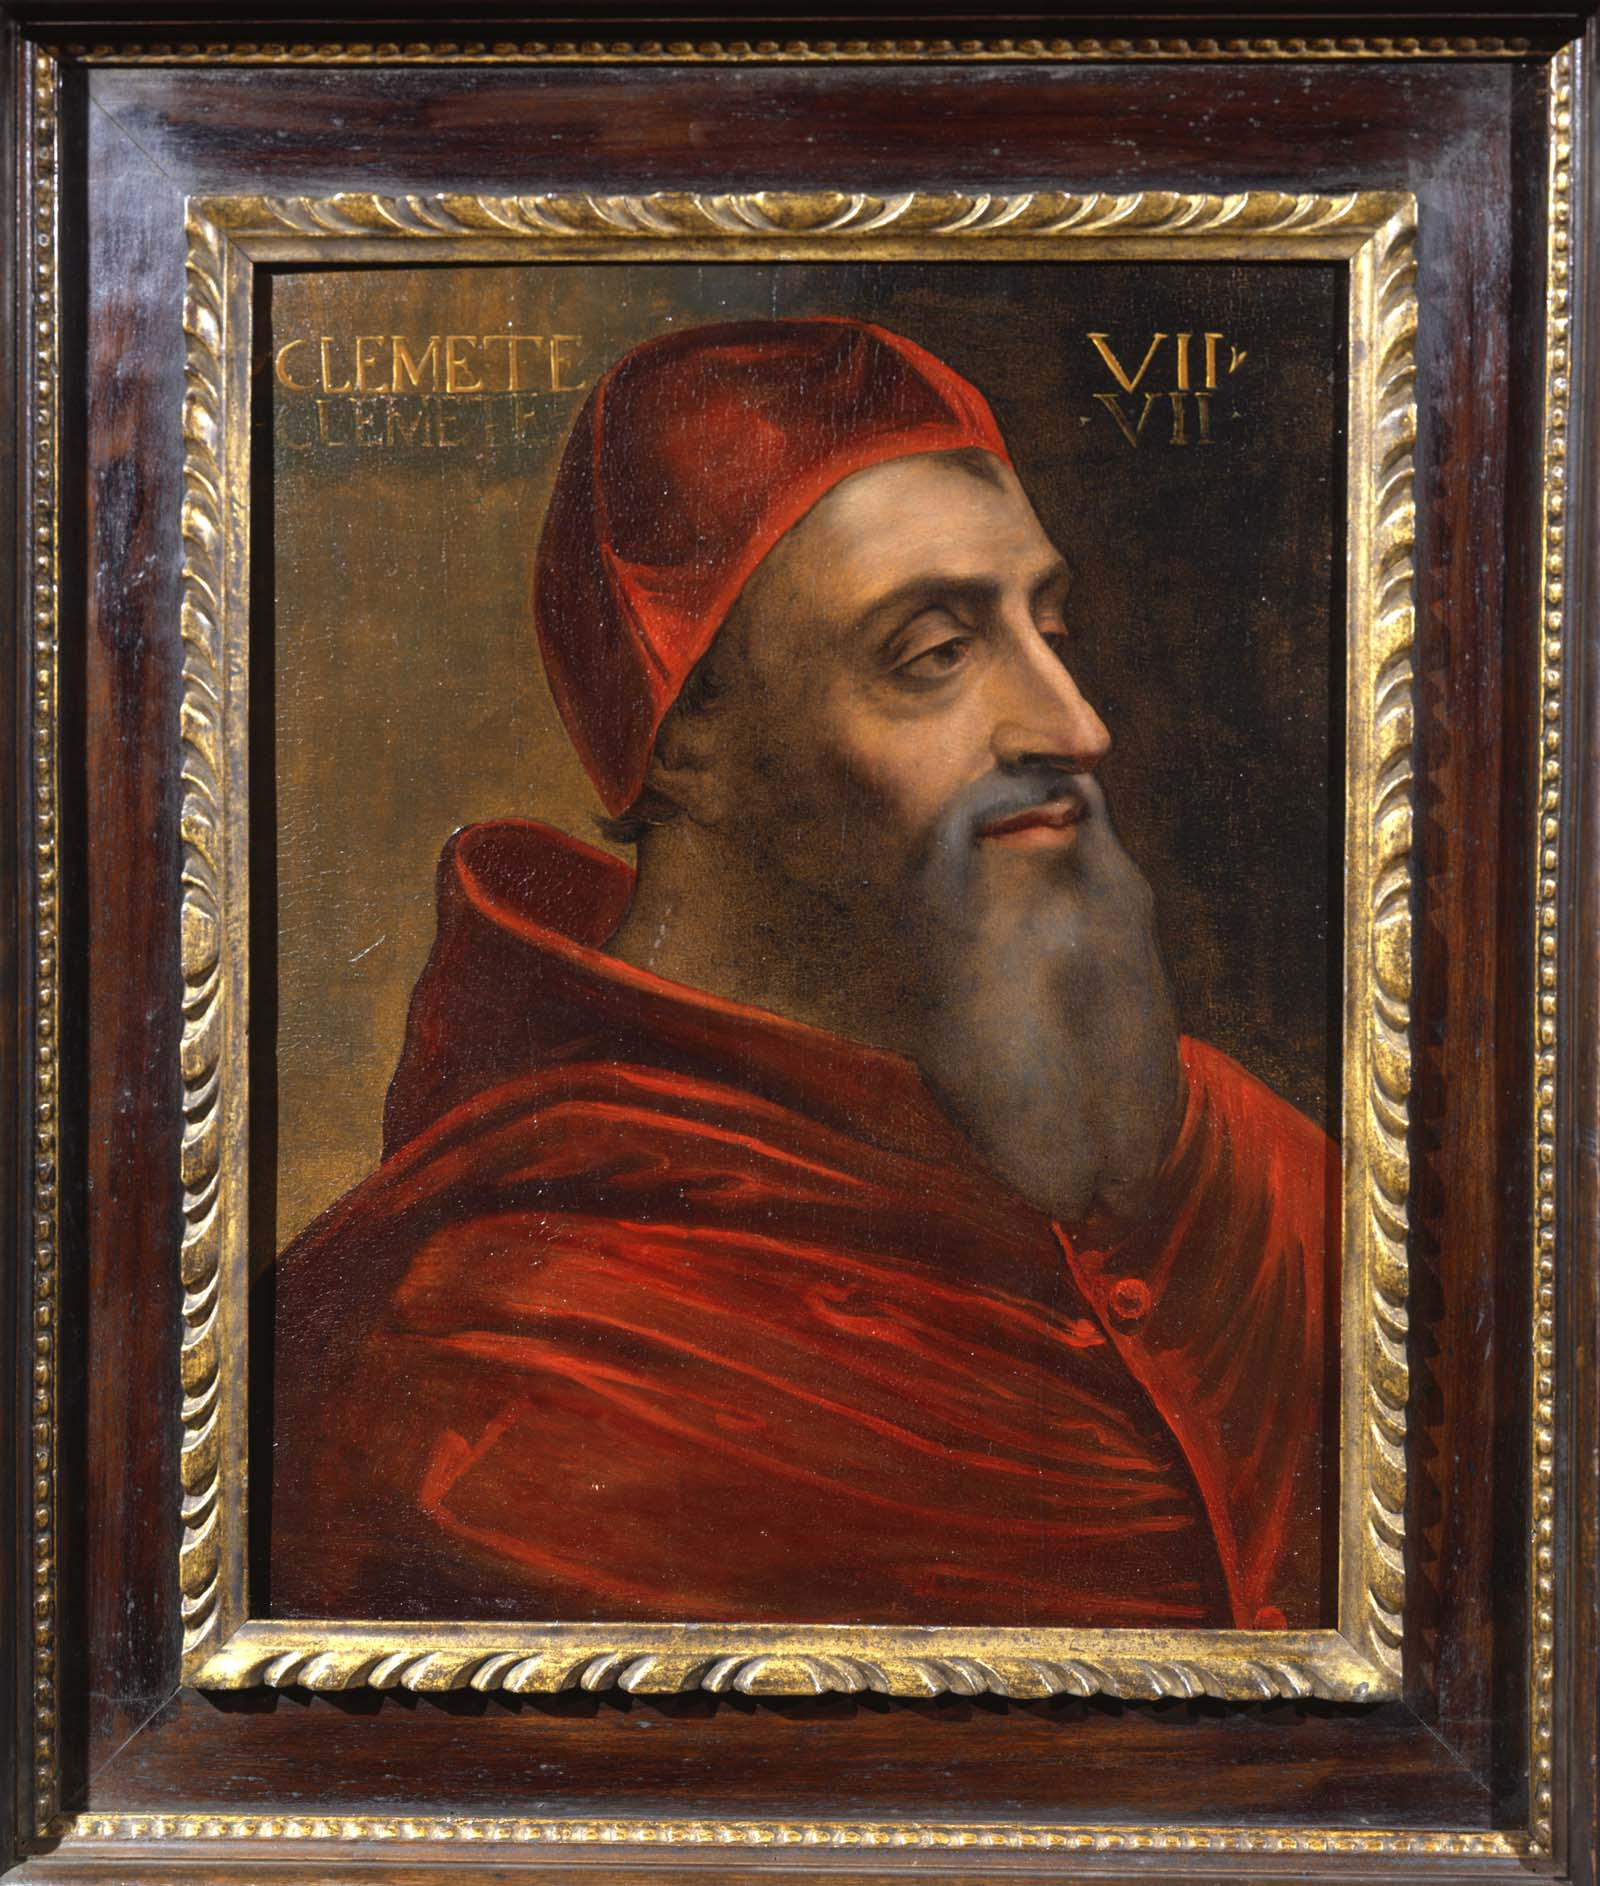 A portrait of Pope Clement in red robes, skull cap and long grey beard